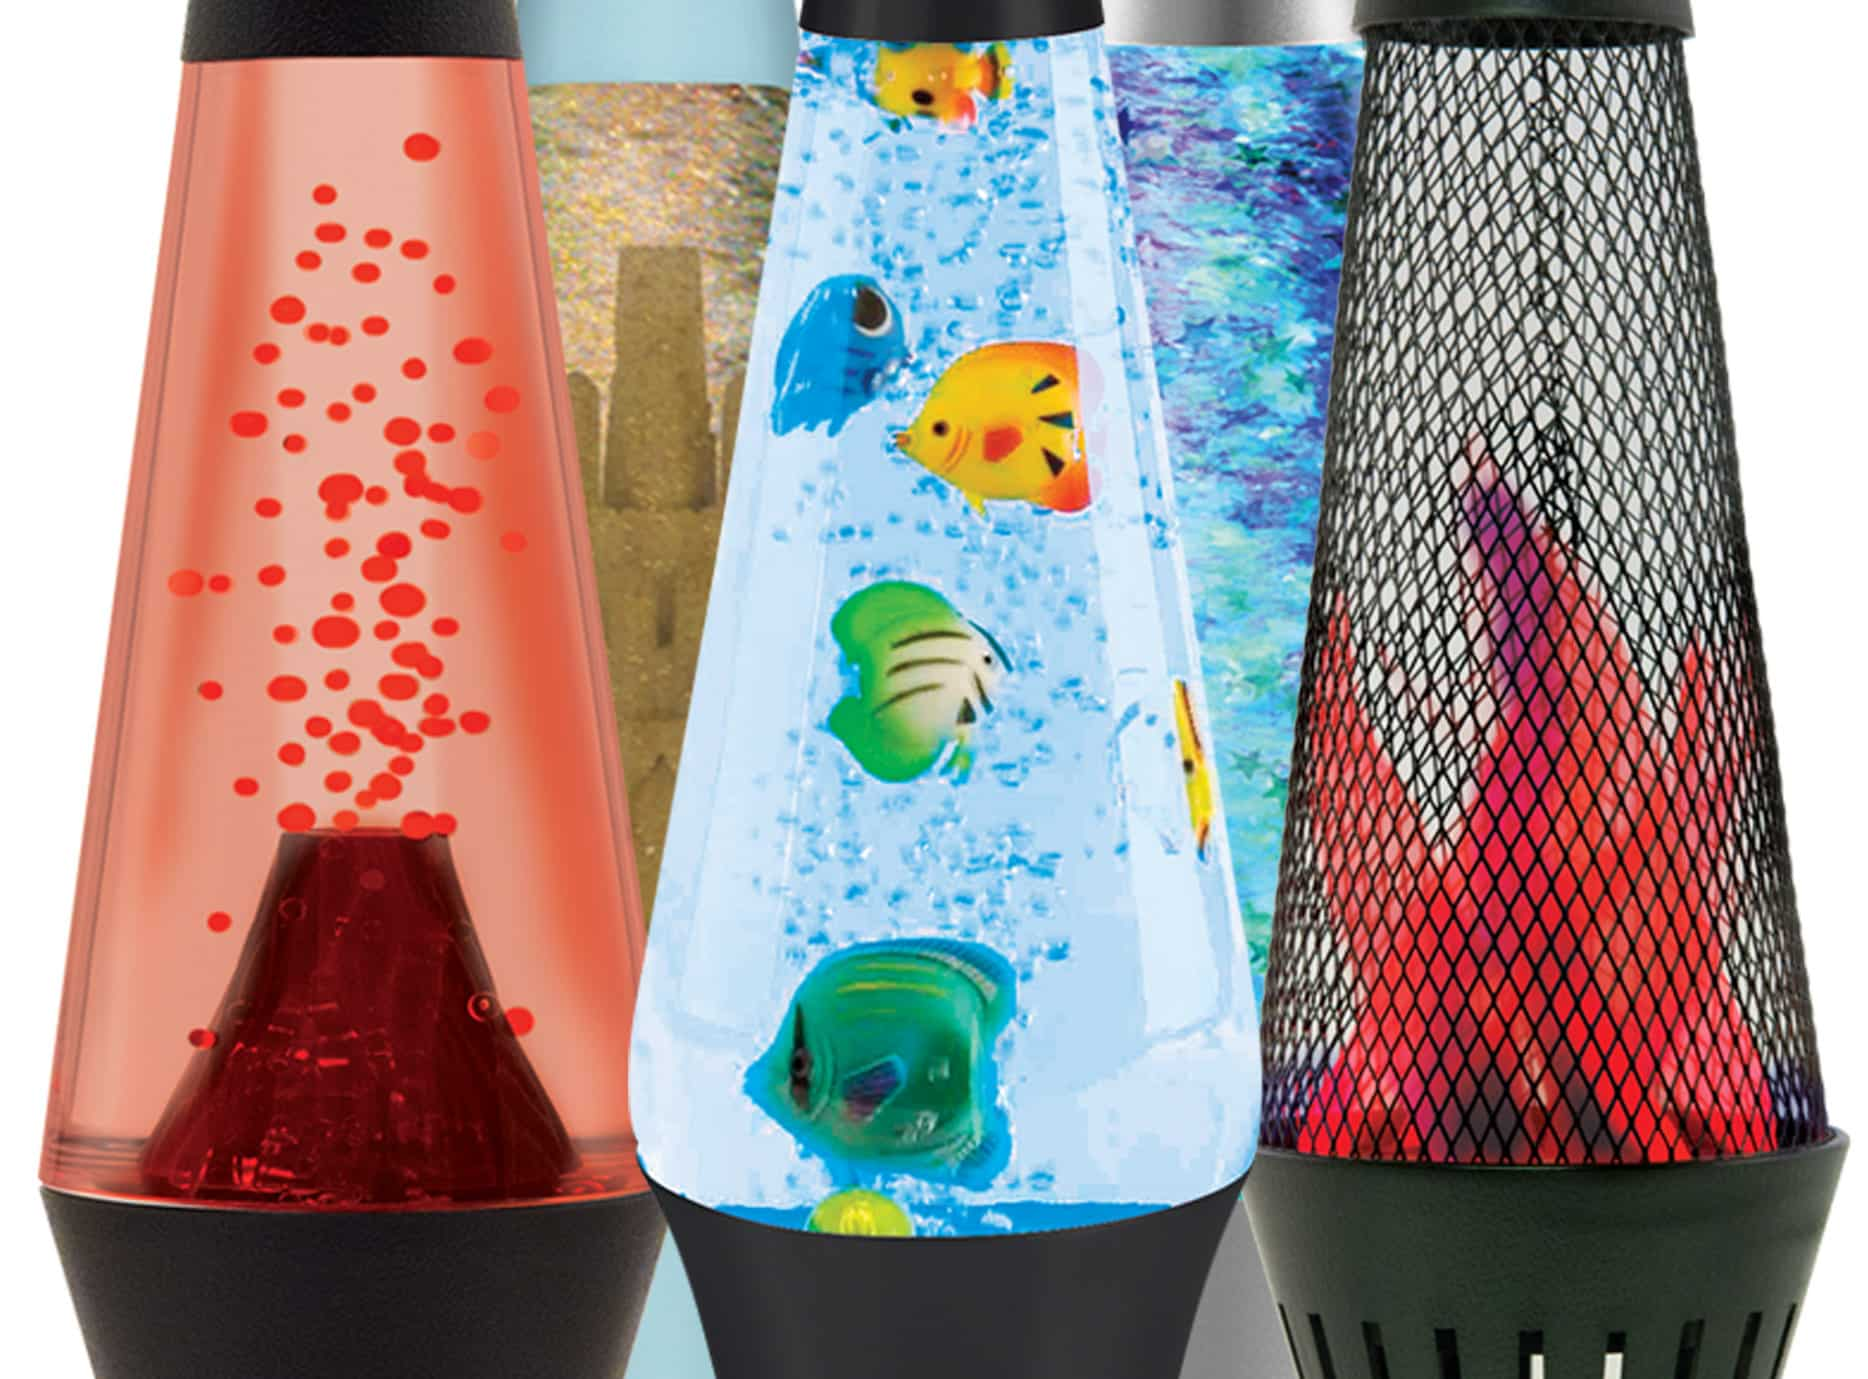 The instant start-up action gets the fun started right away. Without the  heat that you find in a regular LAVA lamp, these are perfect for smaller  children.